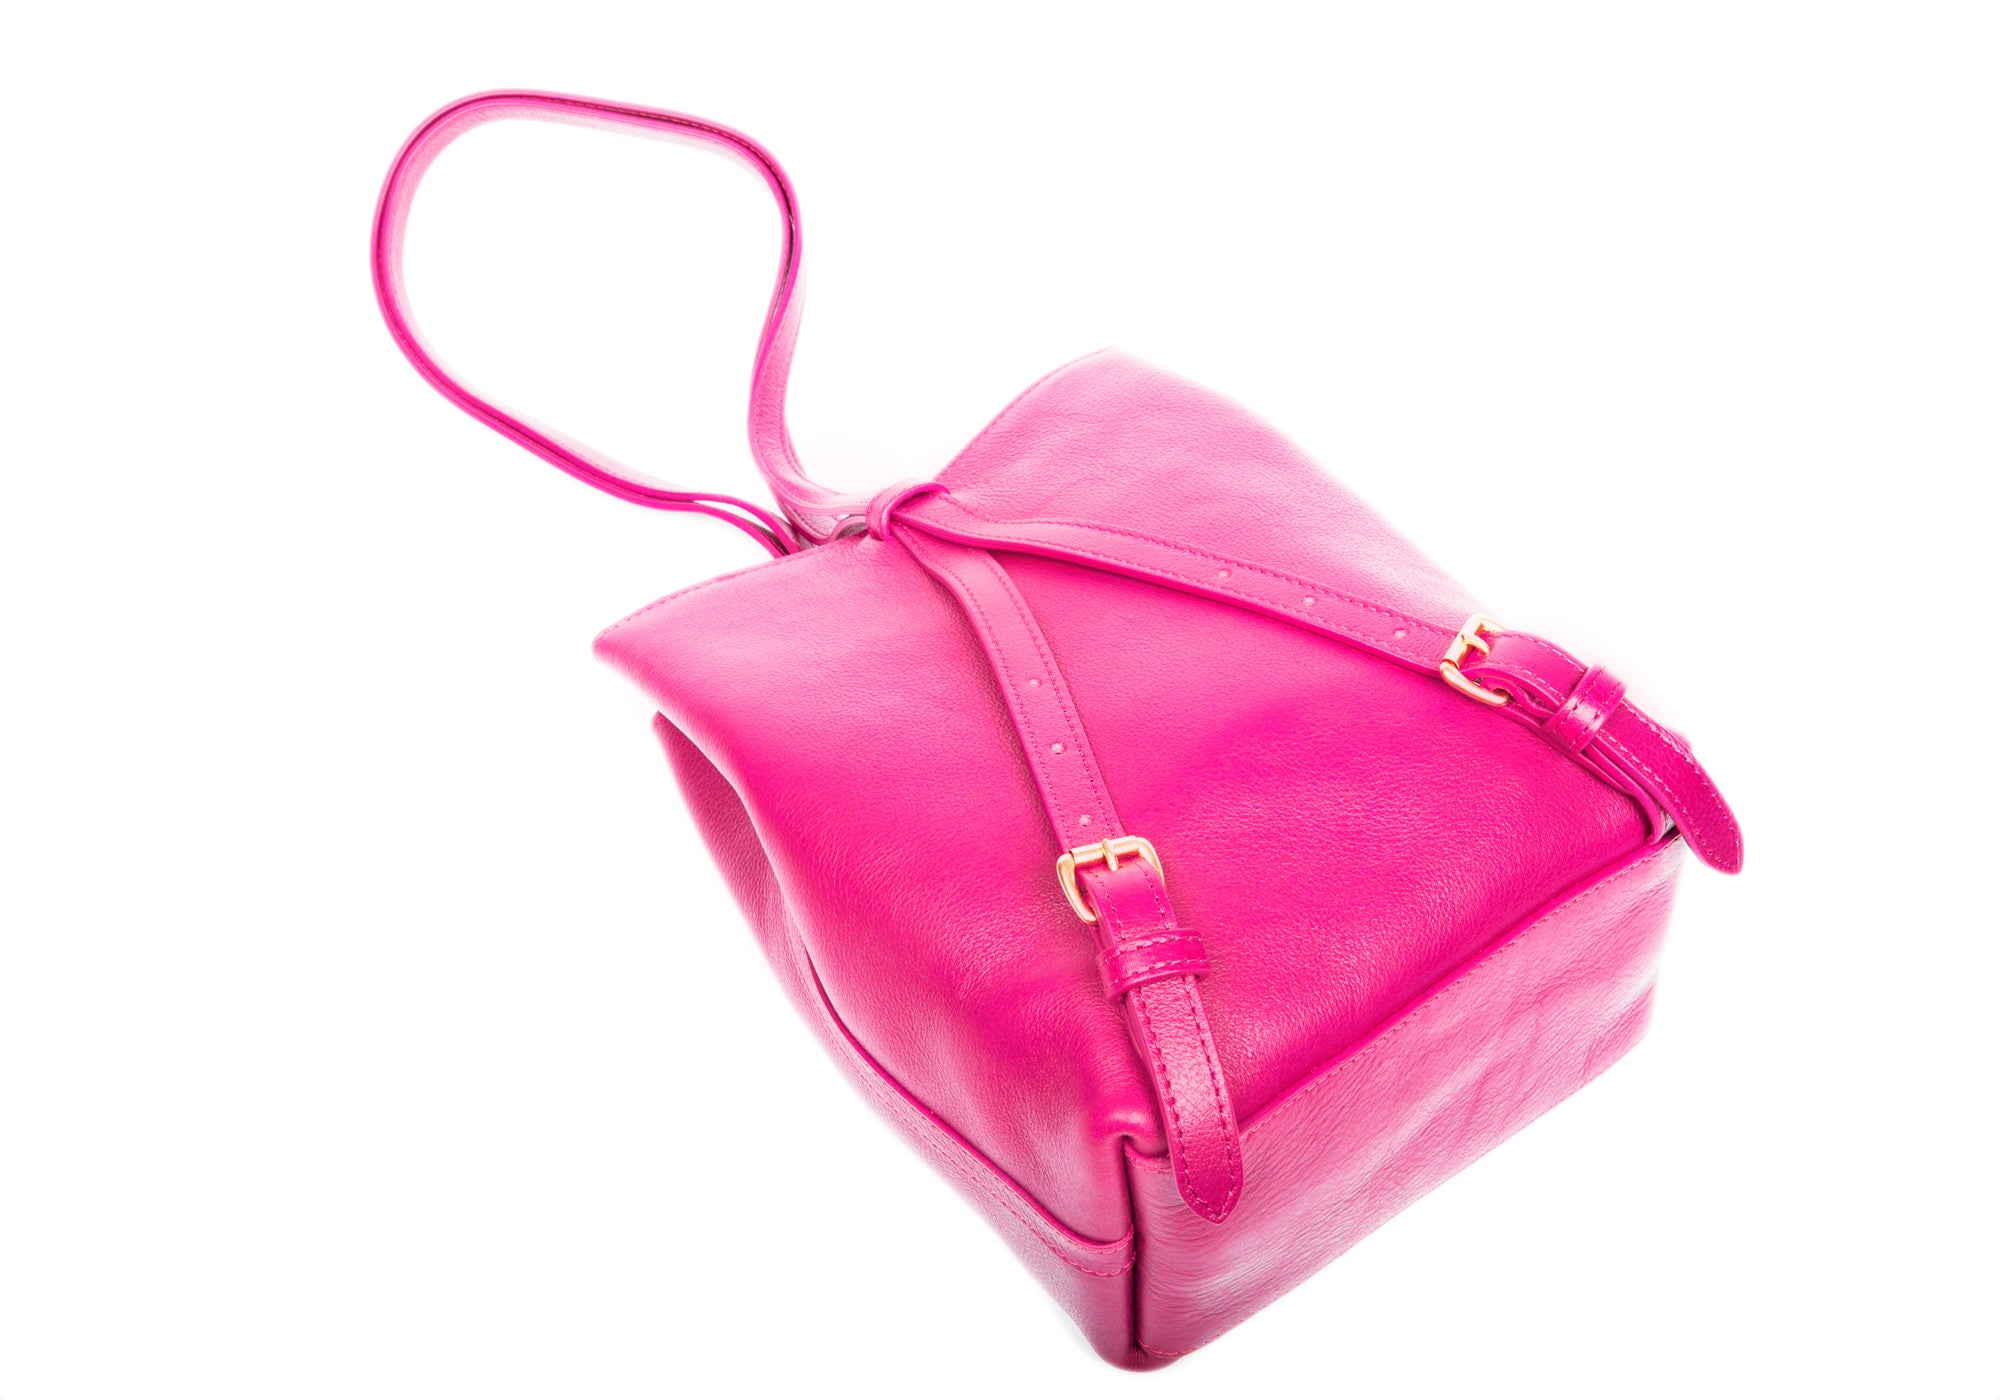 The Mini Sling Backpack Magenta